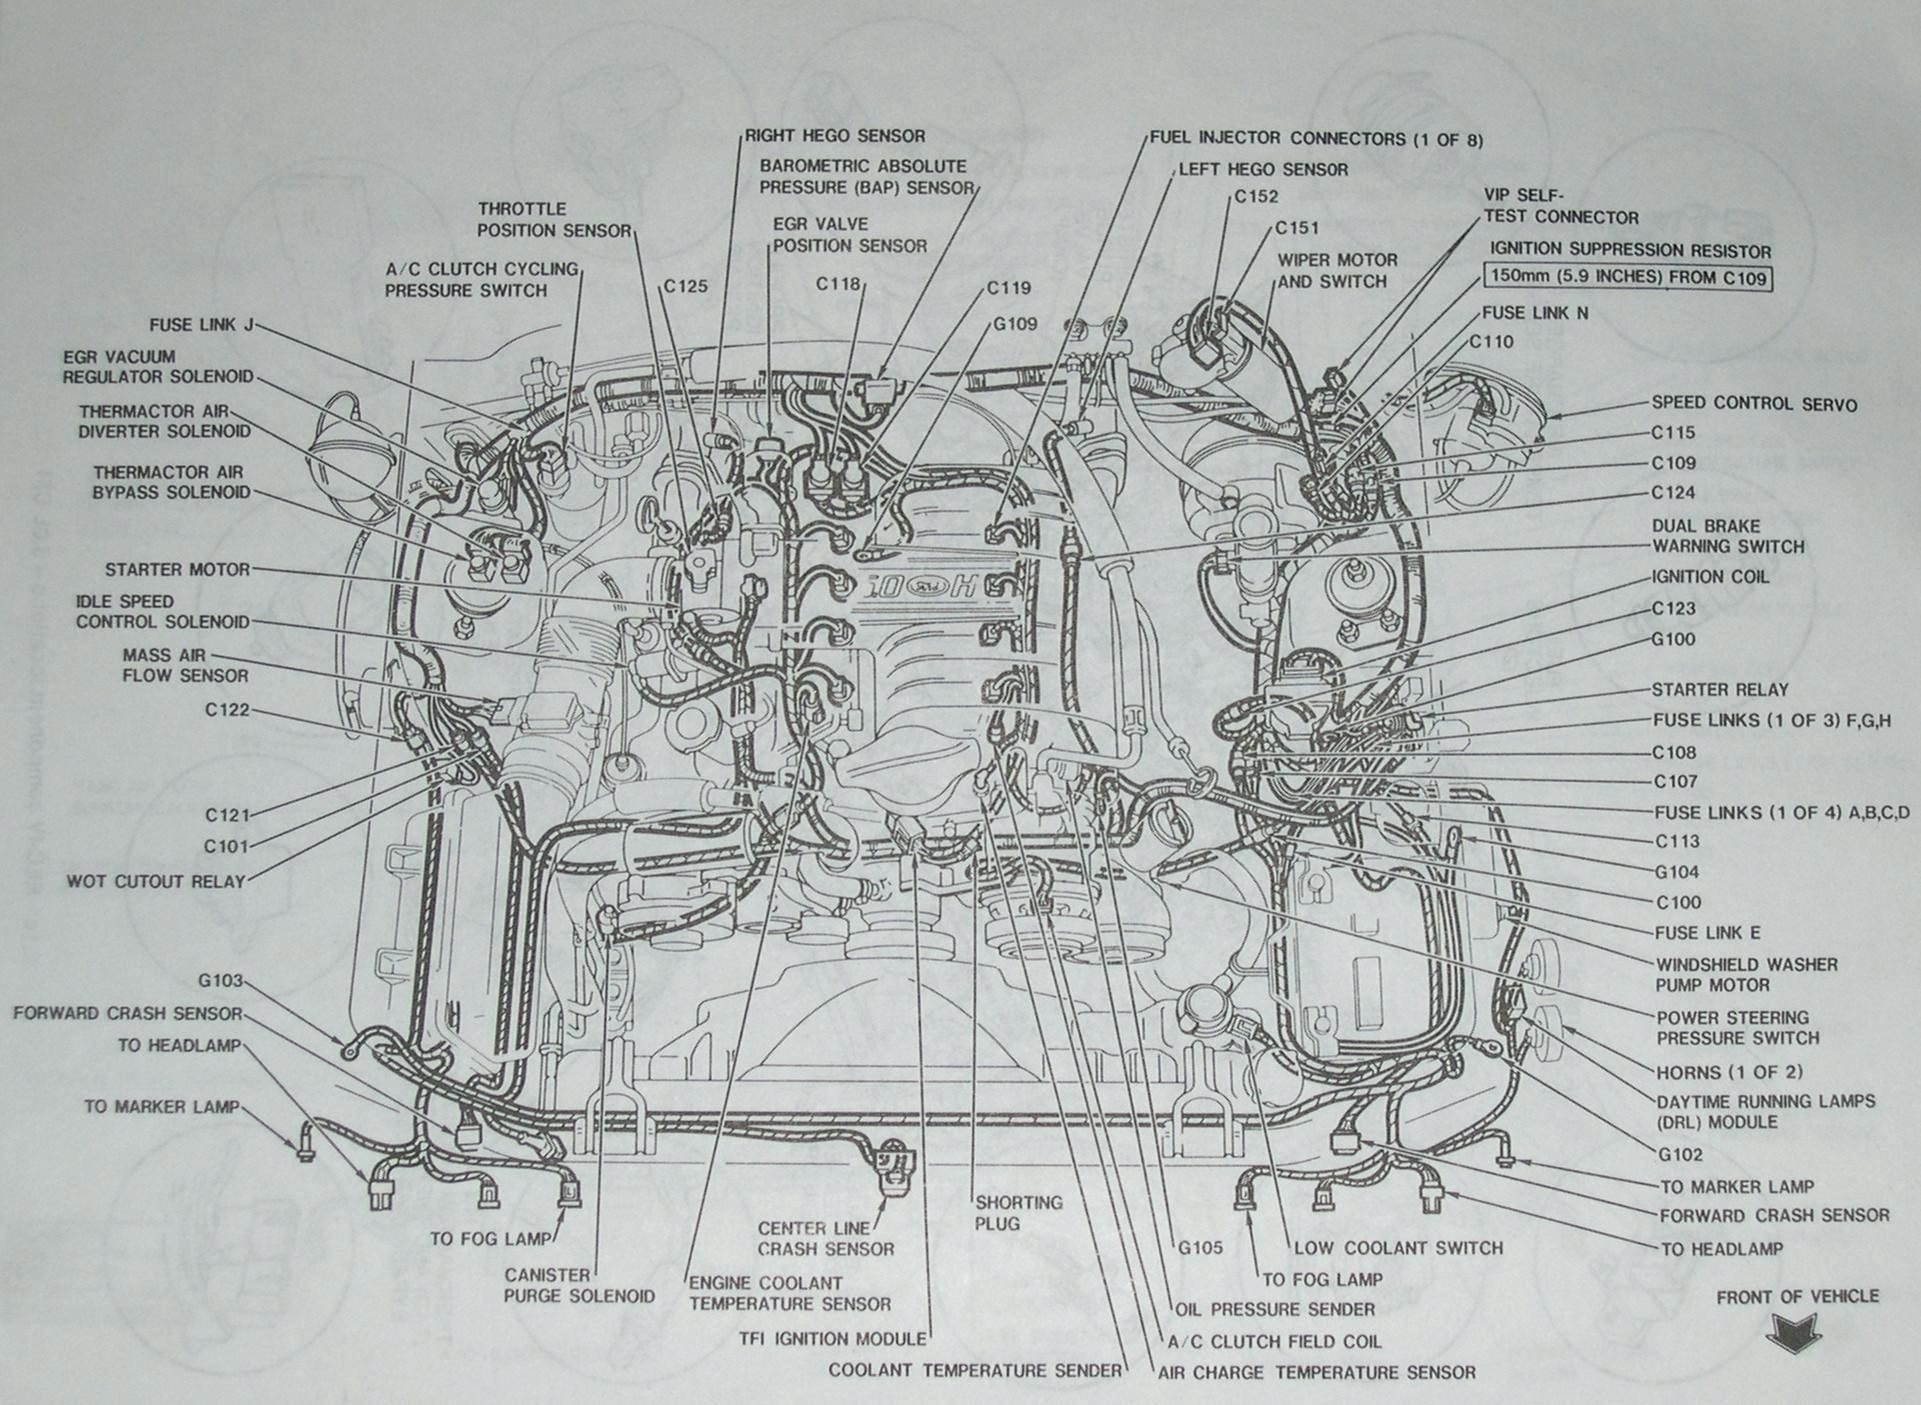 hight resolution of 1994 mustang gt wiring diagram wiring diagram name 1994 mustang wiring harness diagram